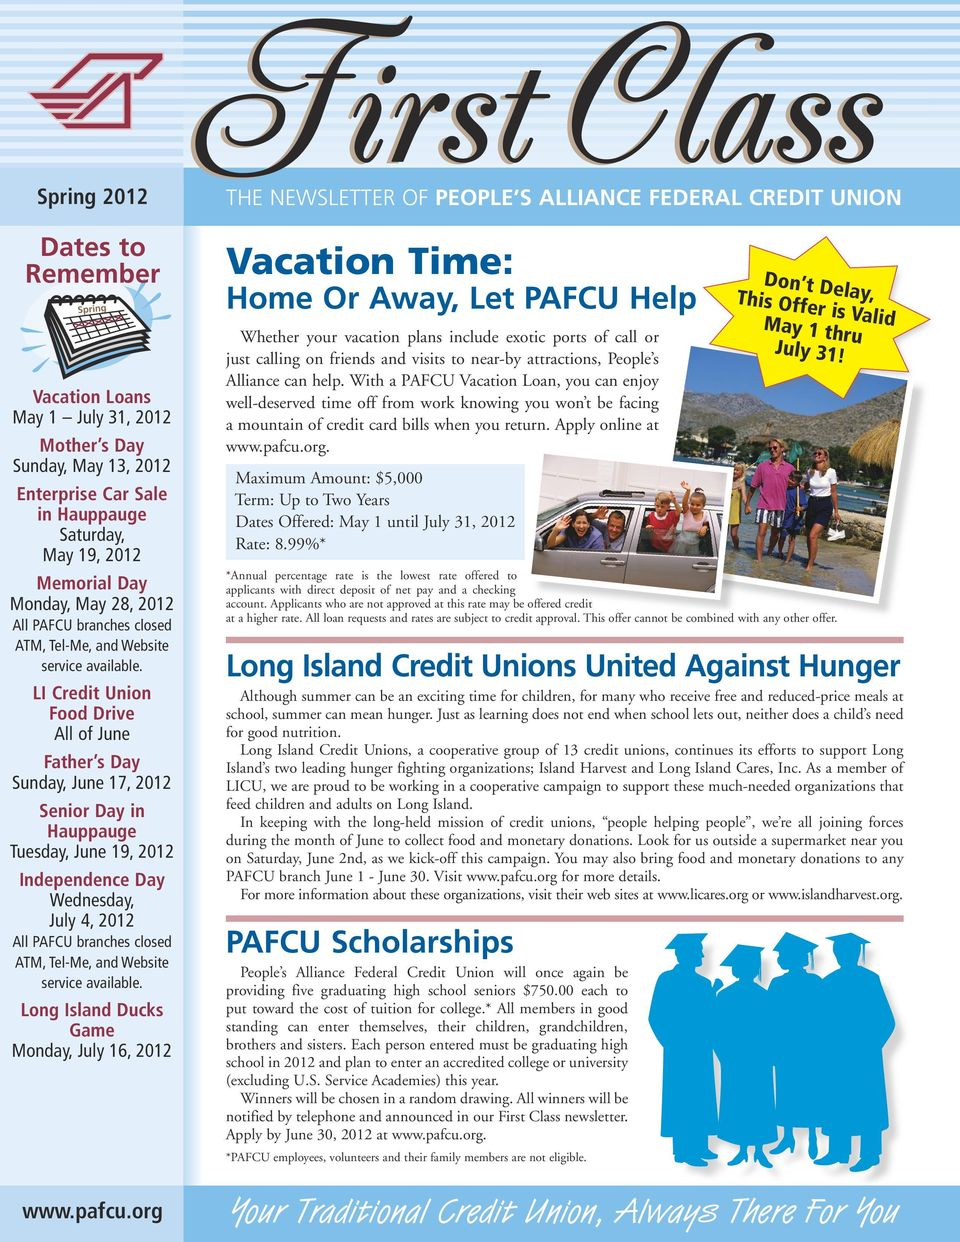 LI Credit Union Food Drive All of June Father s Day Sunday, June 17, 2012 Senior Day in Hauppauge Tuesday, June 19, 2012 Independence Day Wednesday, July 4, 2012 All PAFCU branches closed ATM,